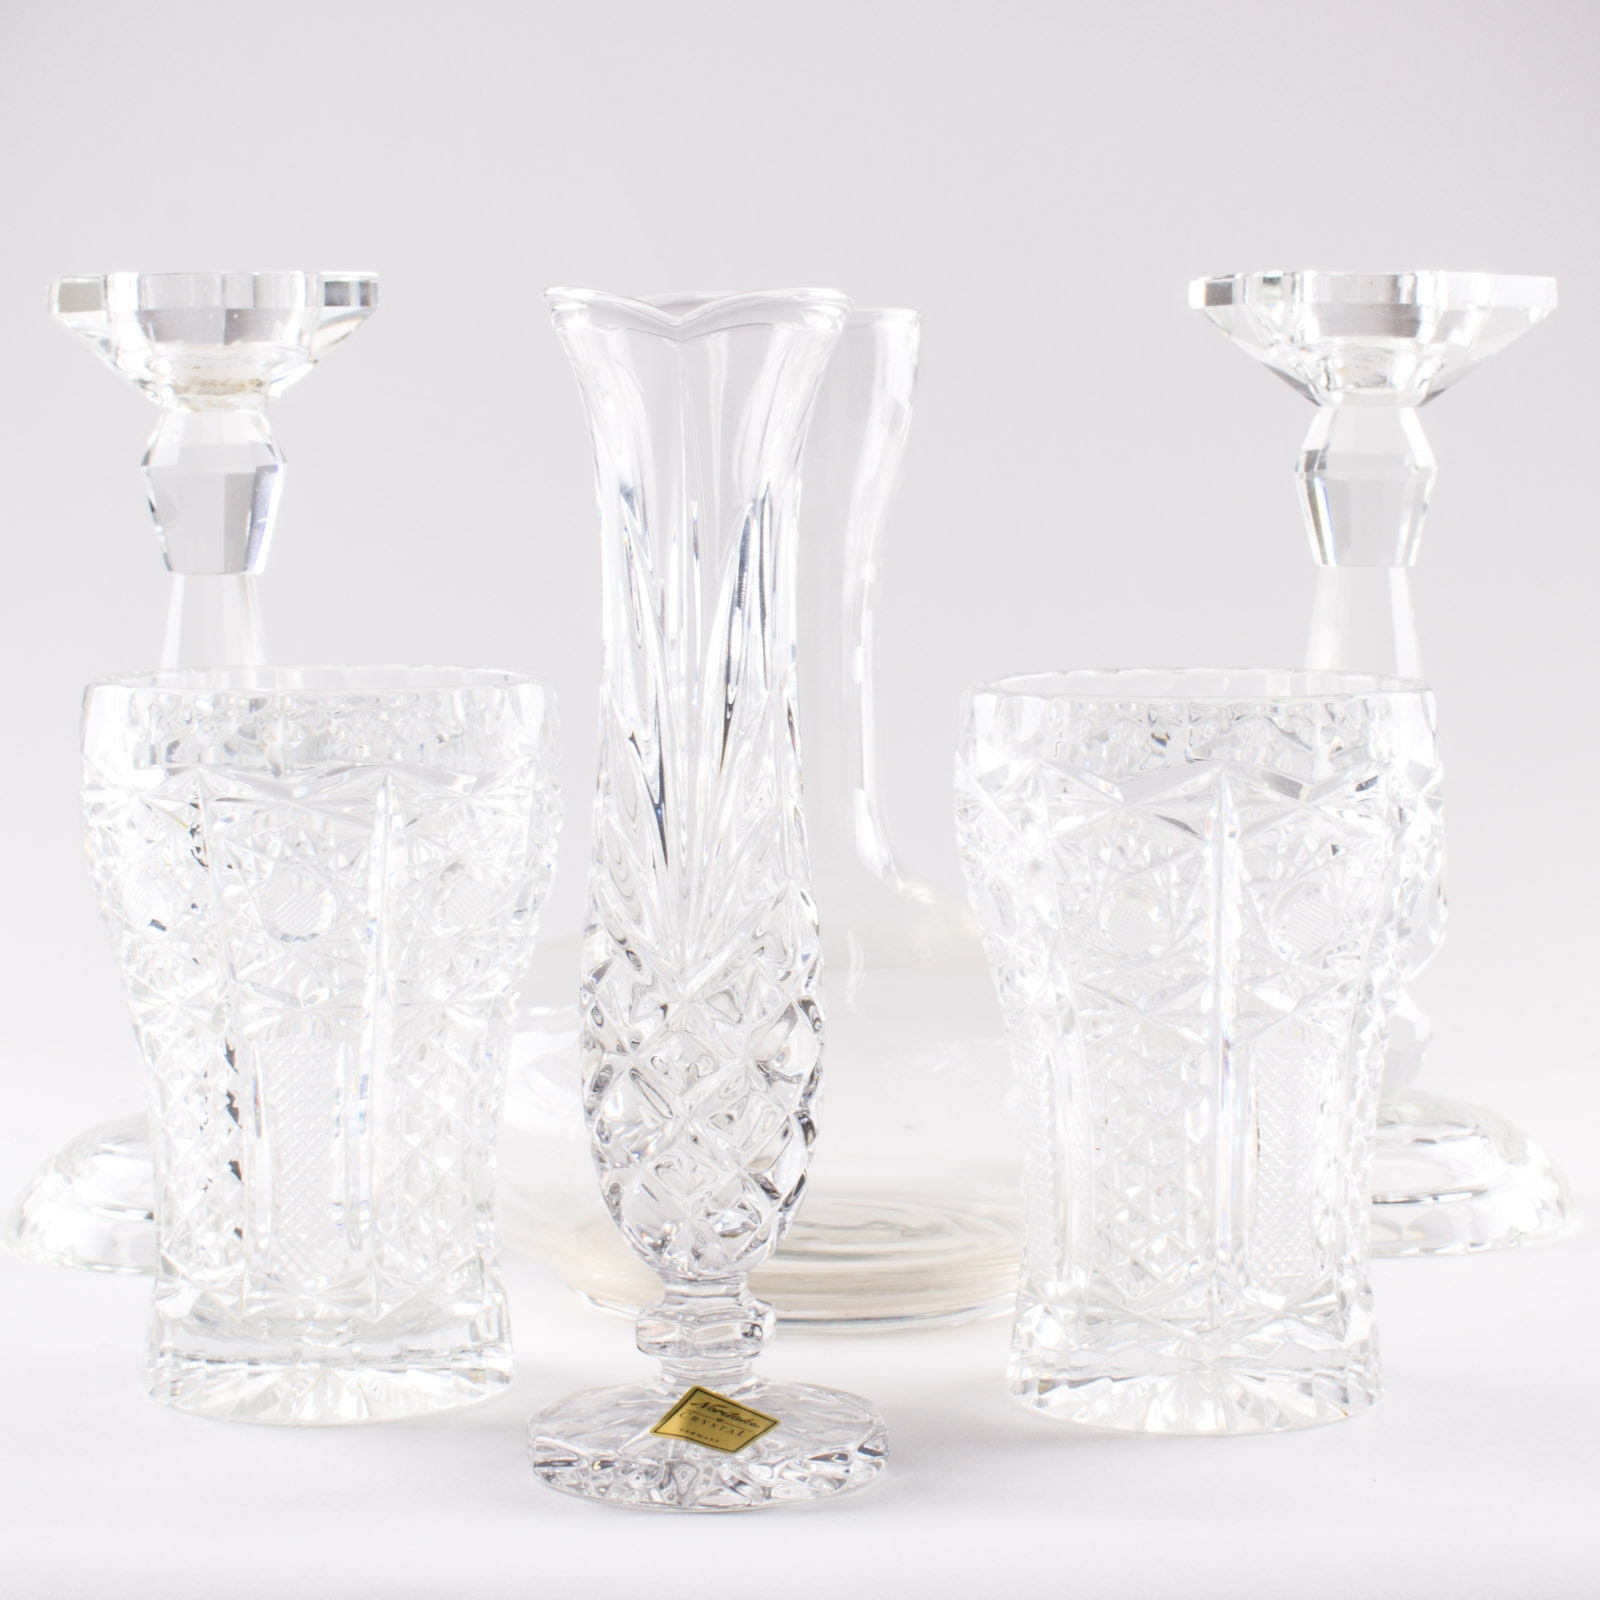 Collection of Glass and Crystal Decor by Noritake, Fara, and More